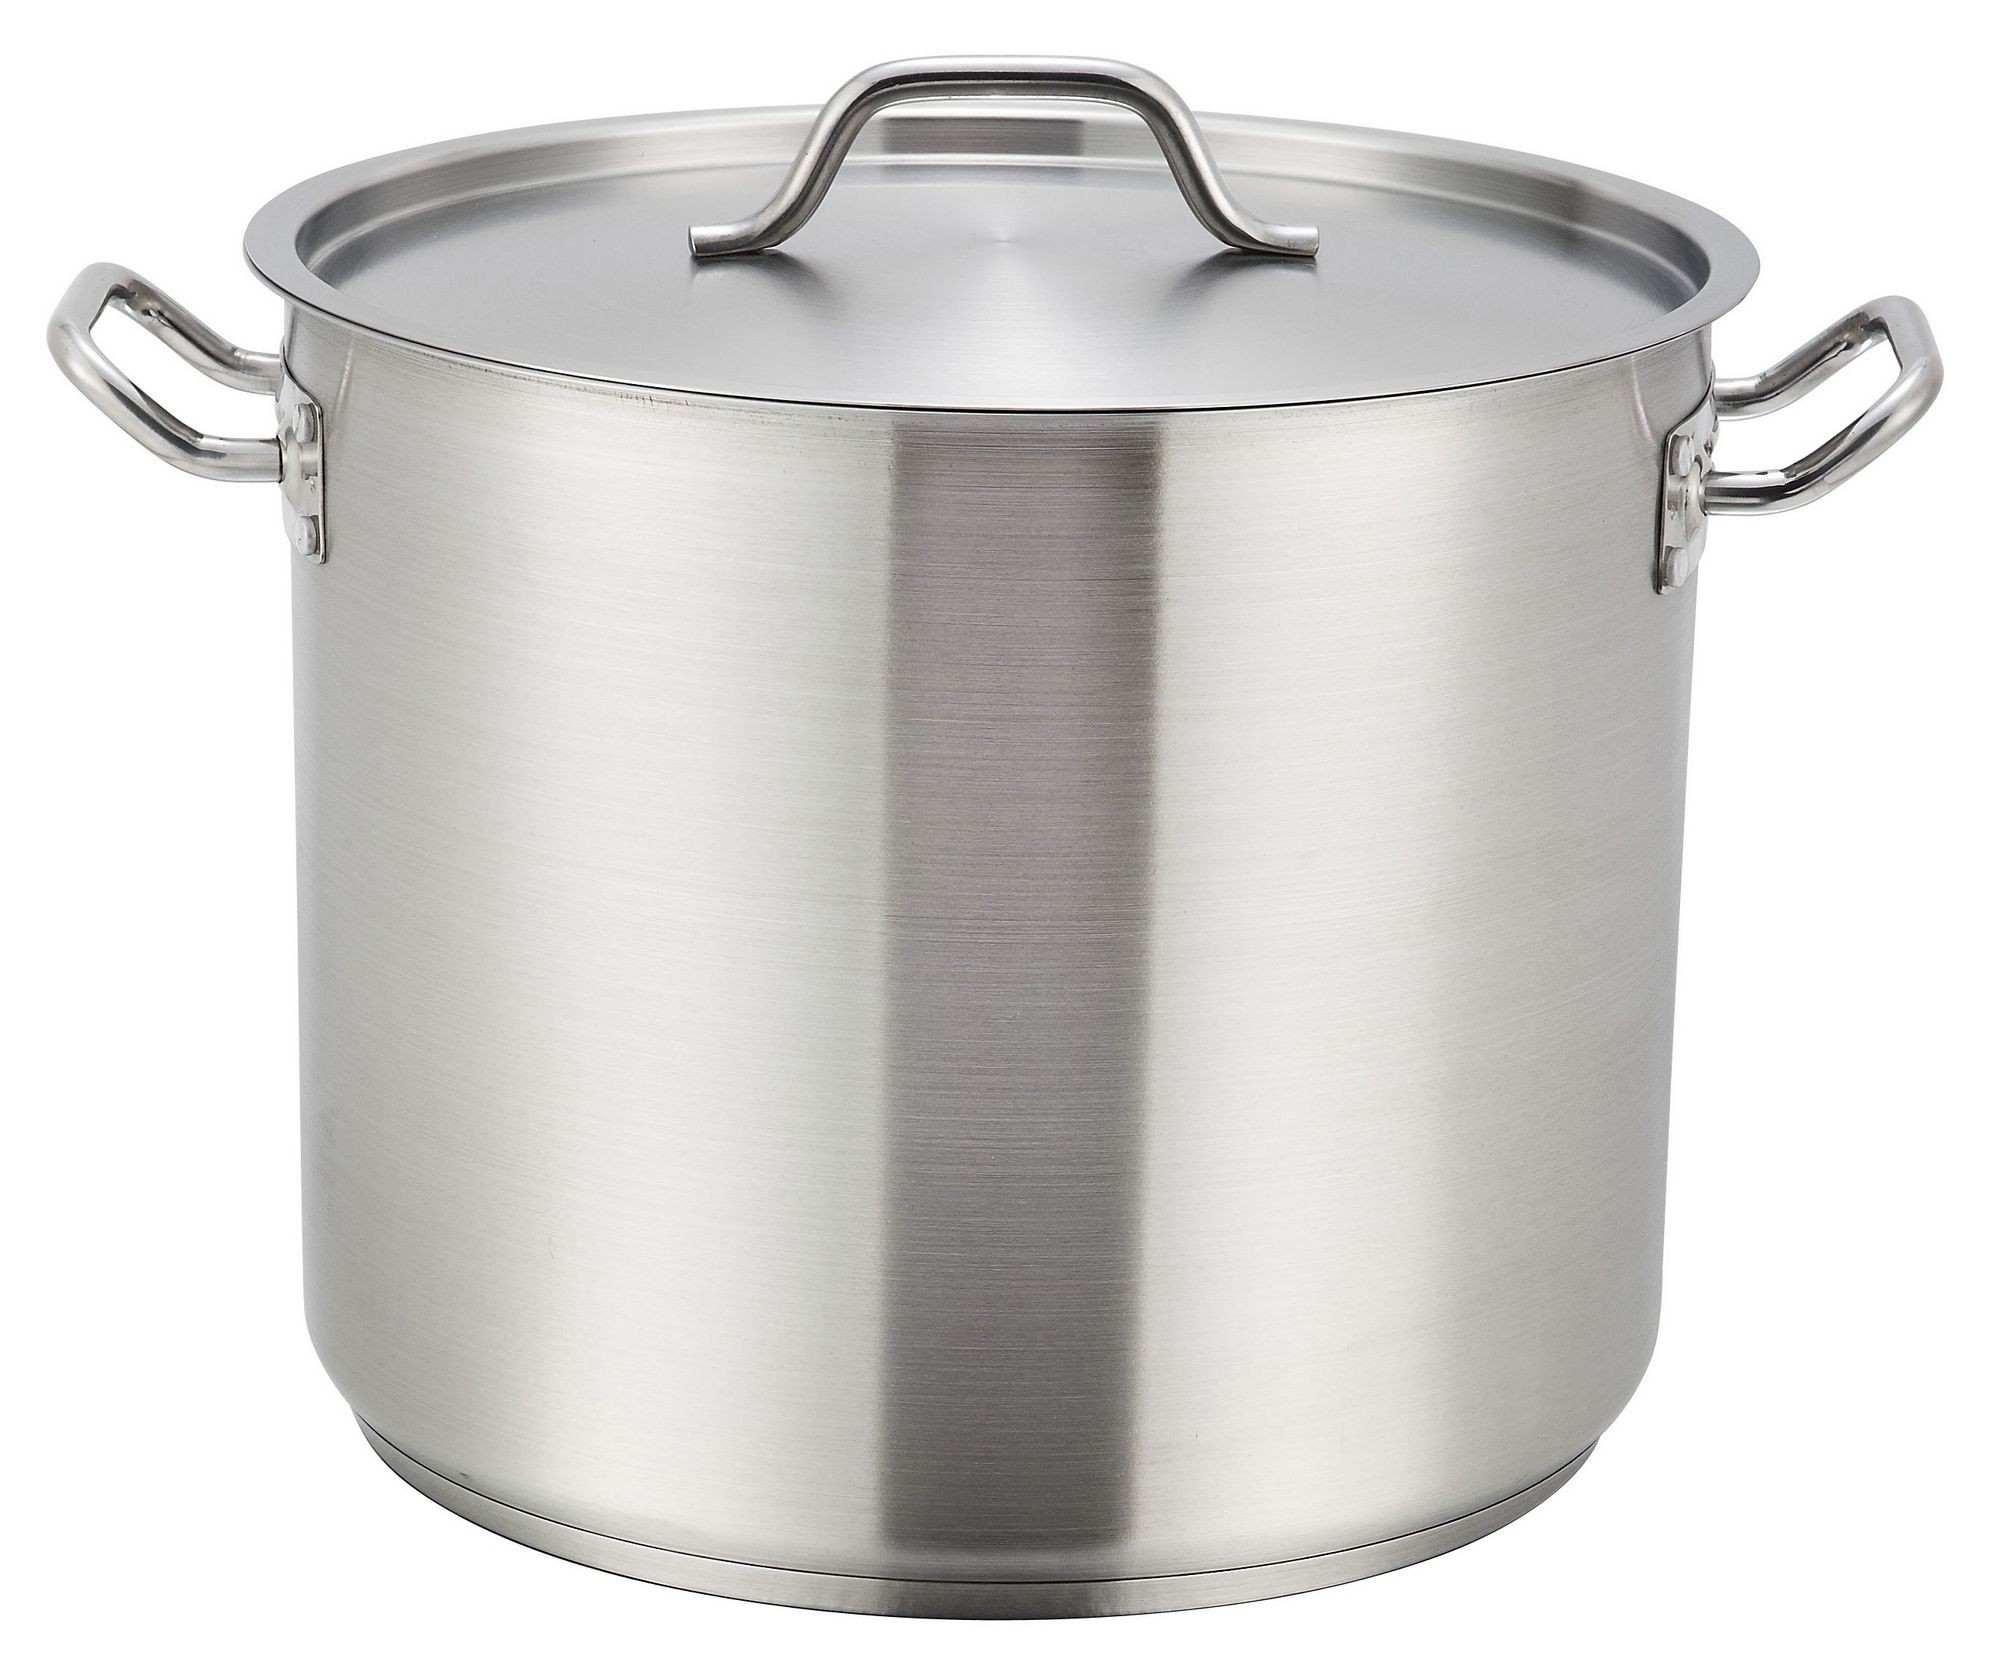 Winco SST-60 Premium Induction Stainless Steel 60 Qt. Stock Pot